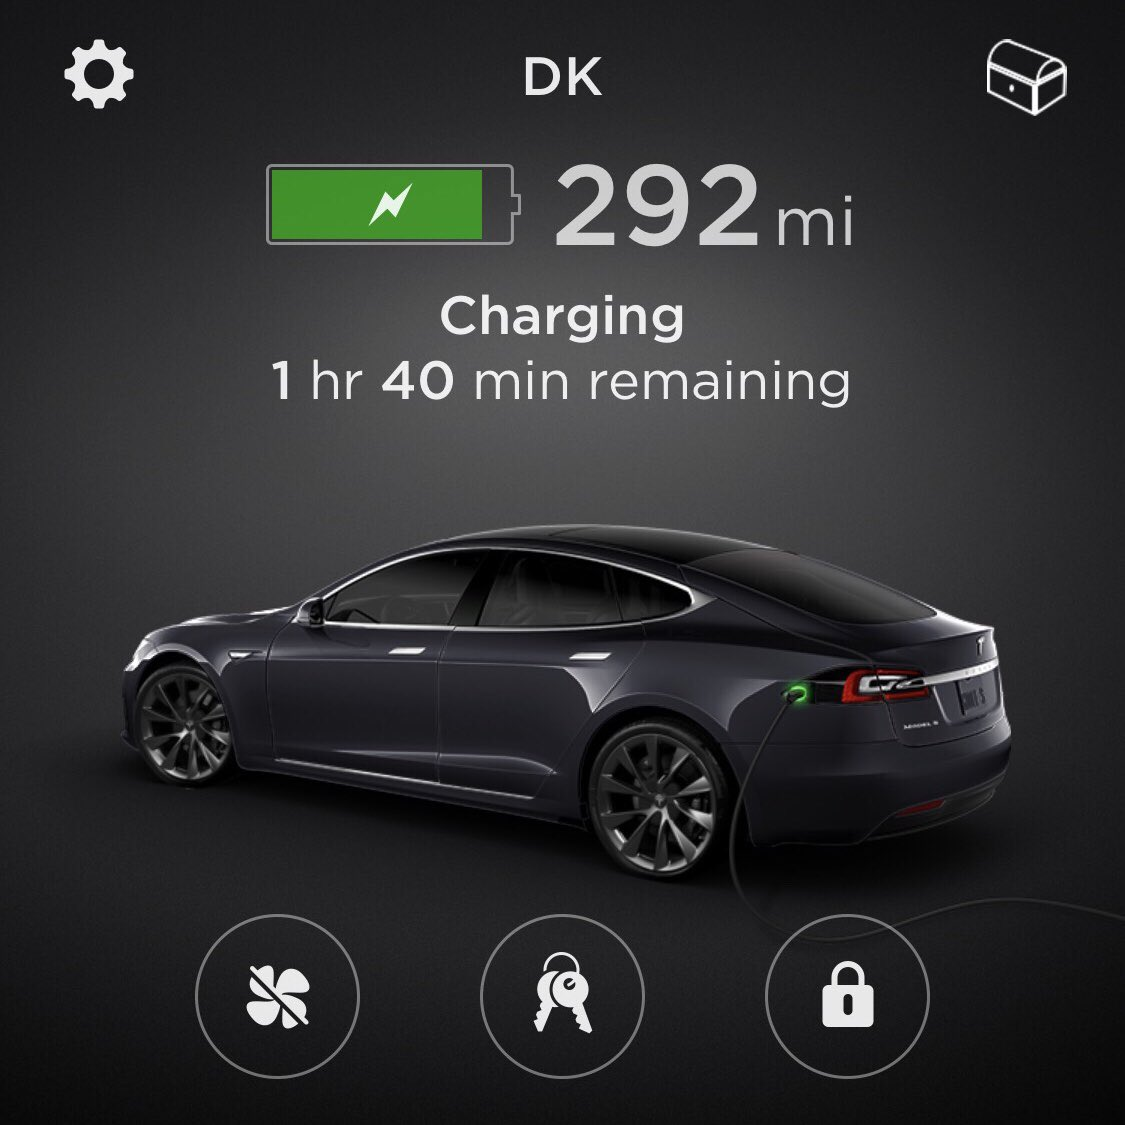 The Tesla app is back online. We apologize for any inconvenience